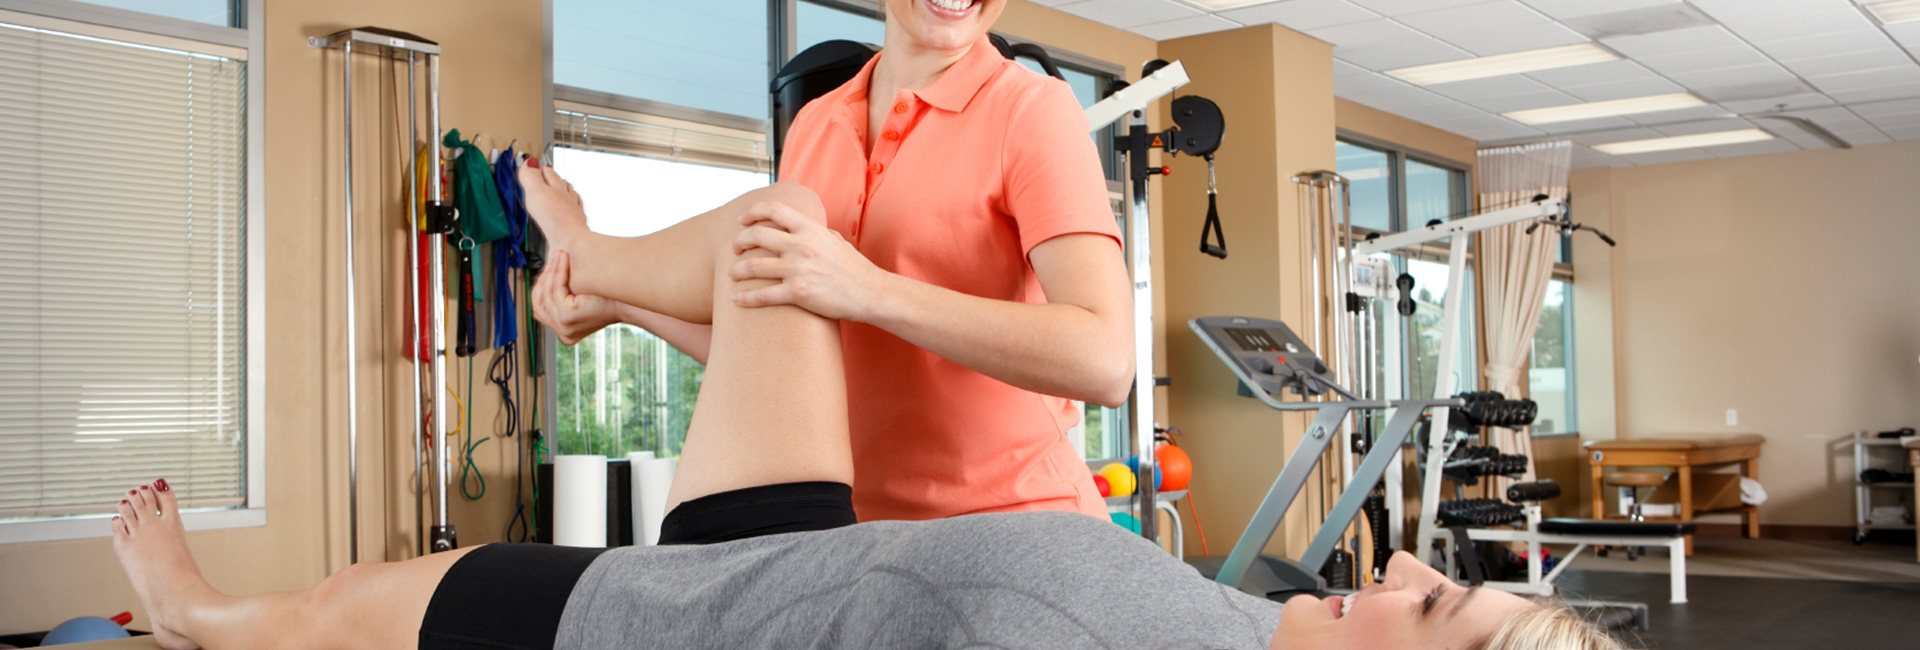 Lumbopelvic-Stability---Benefits-of-Physical-Therapy